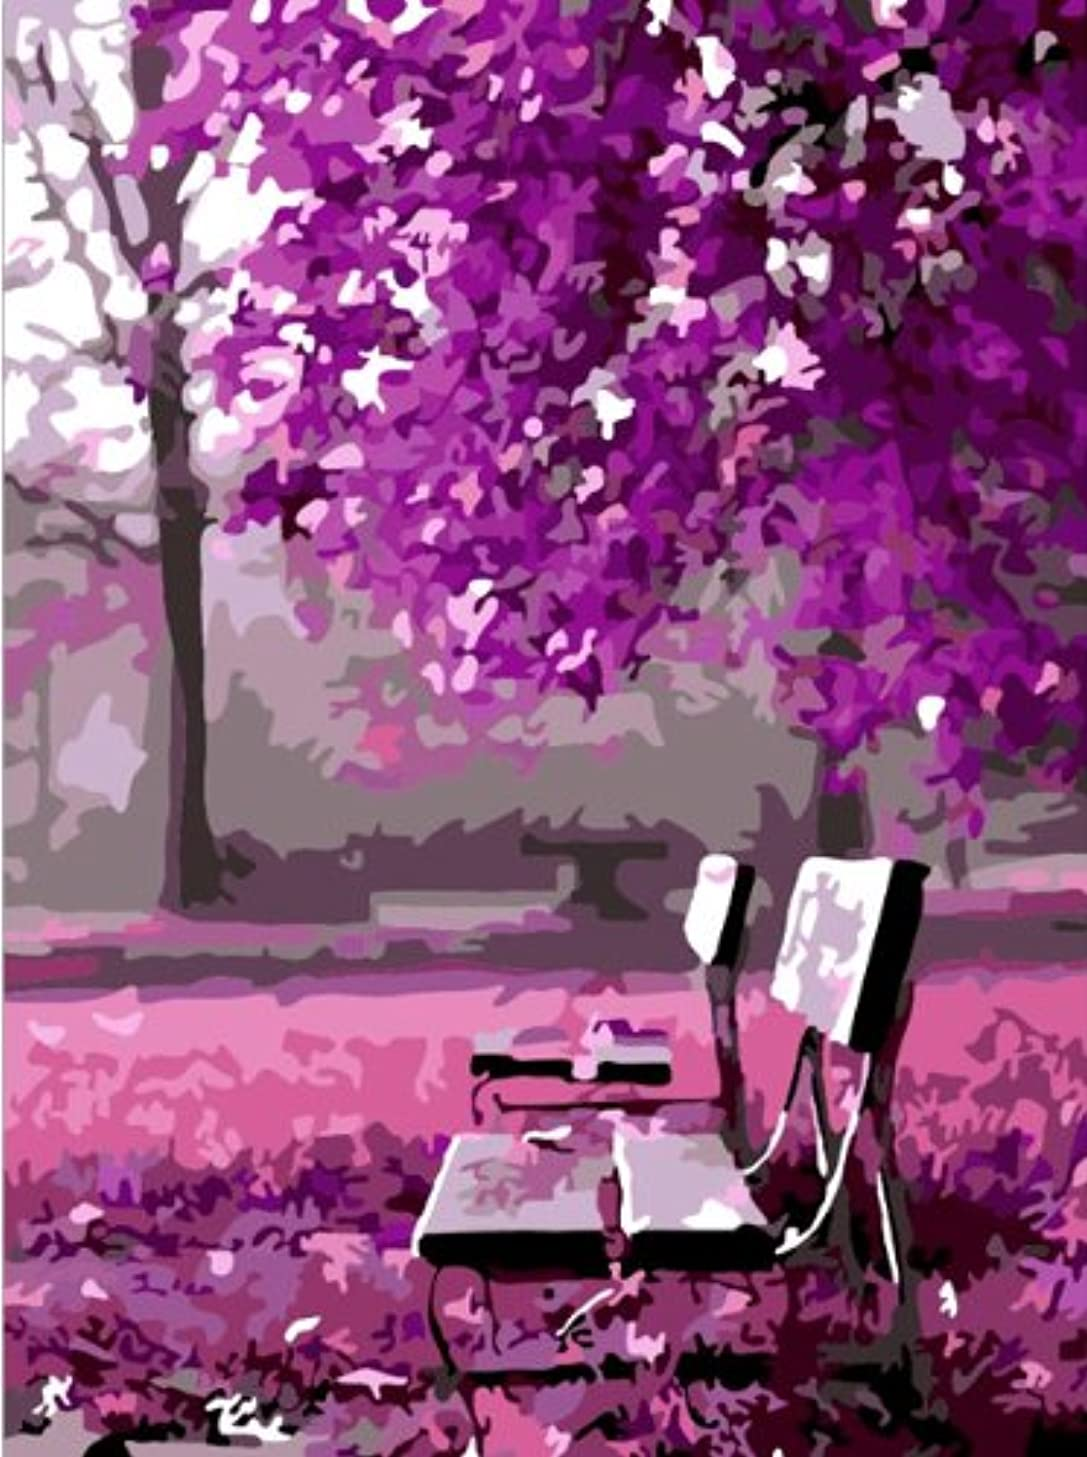 Colour Talk Diy oil painting, paint by number kit- Wait for romance 1620 inch.